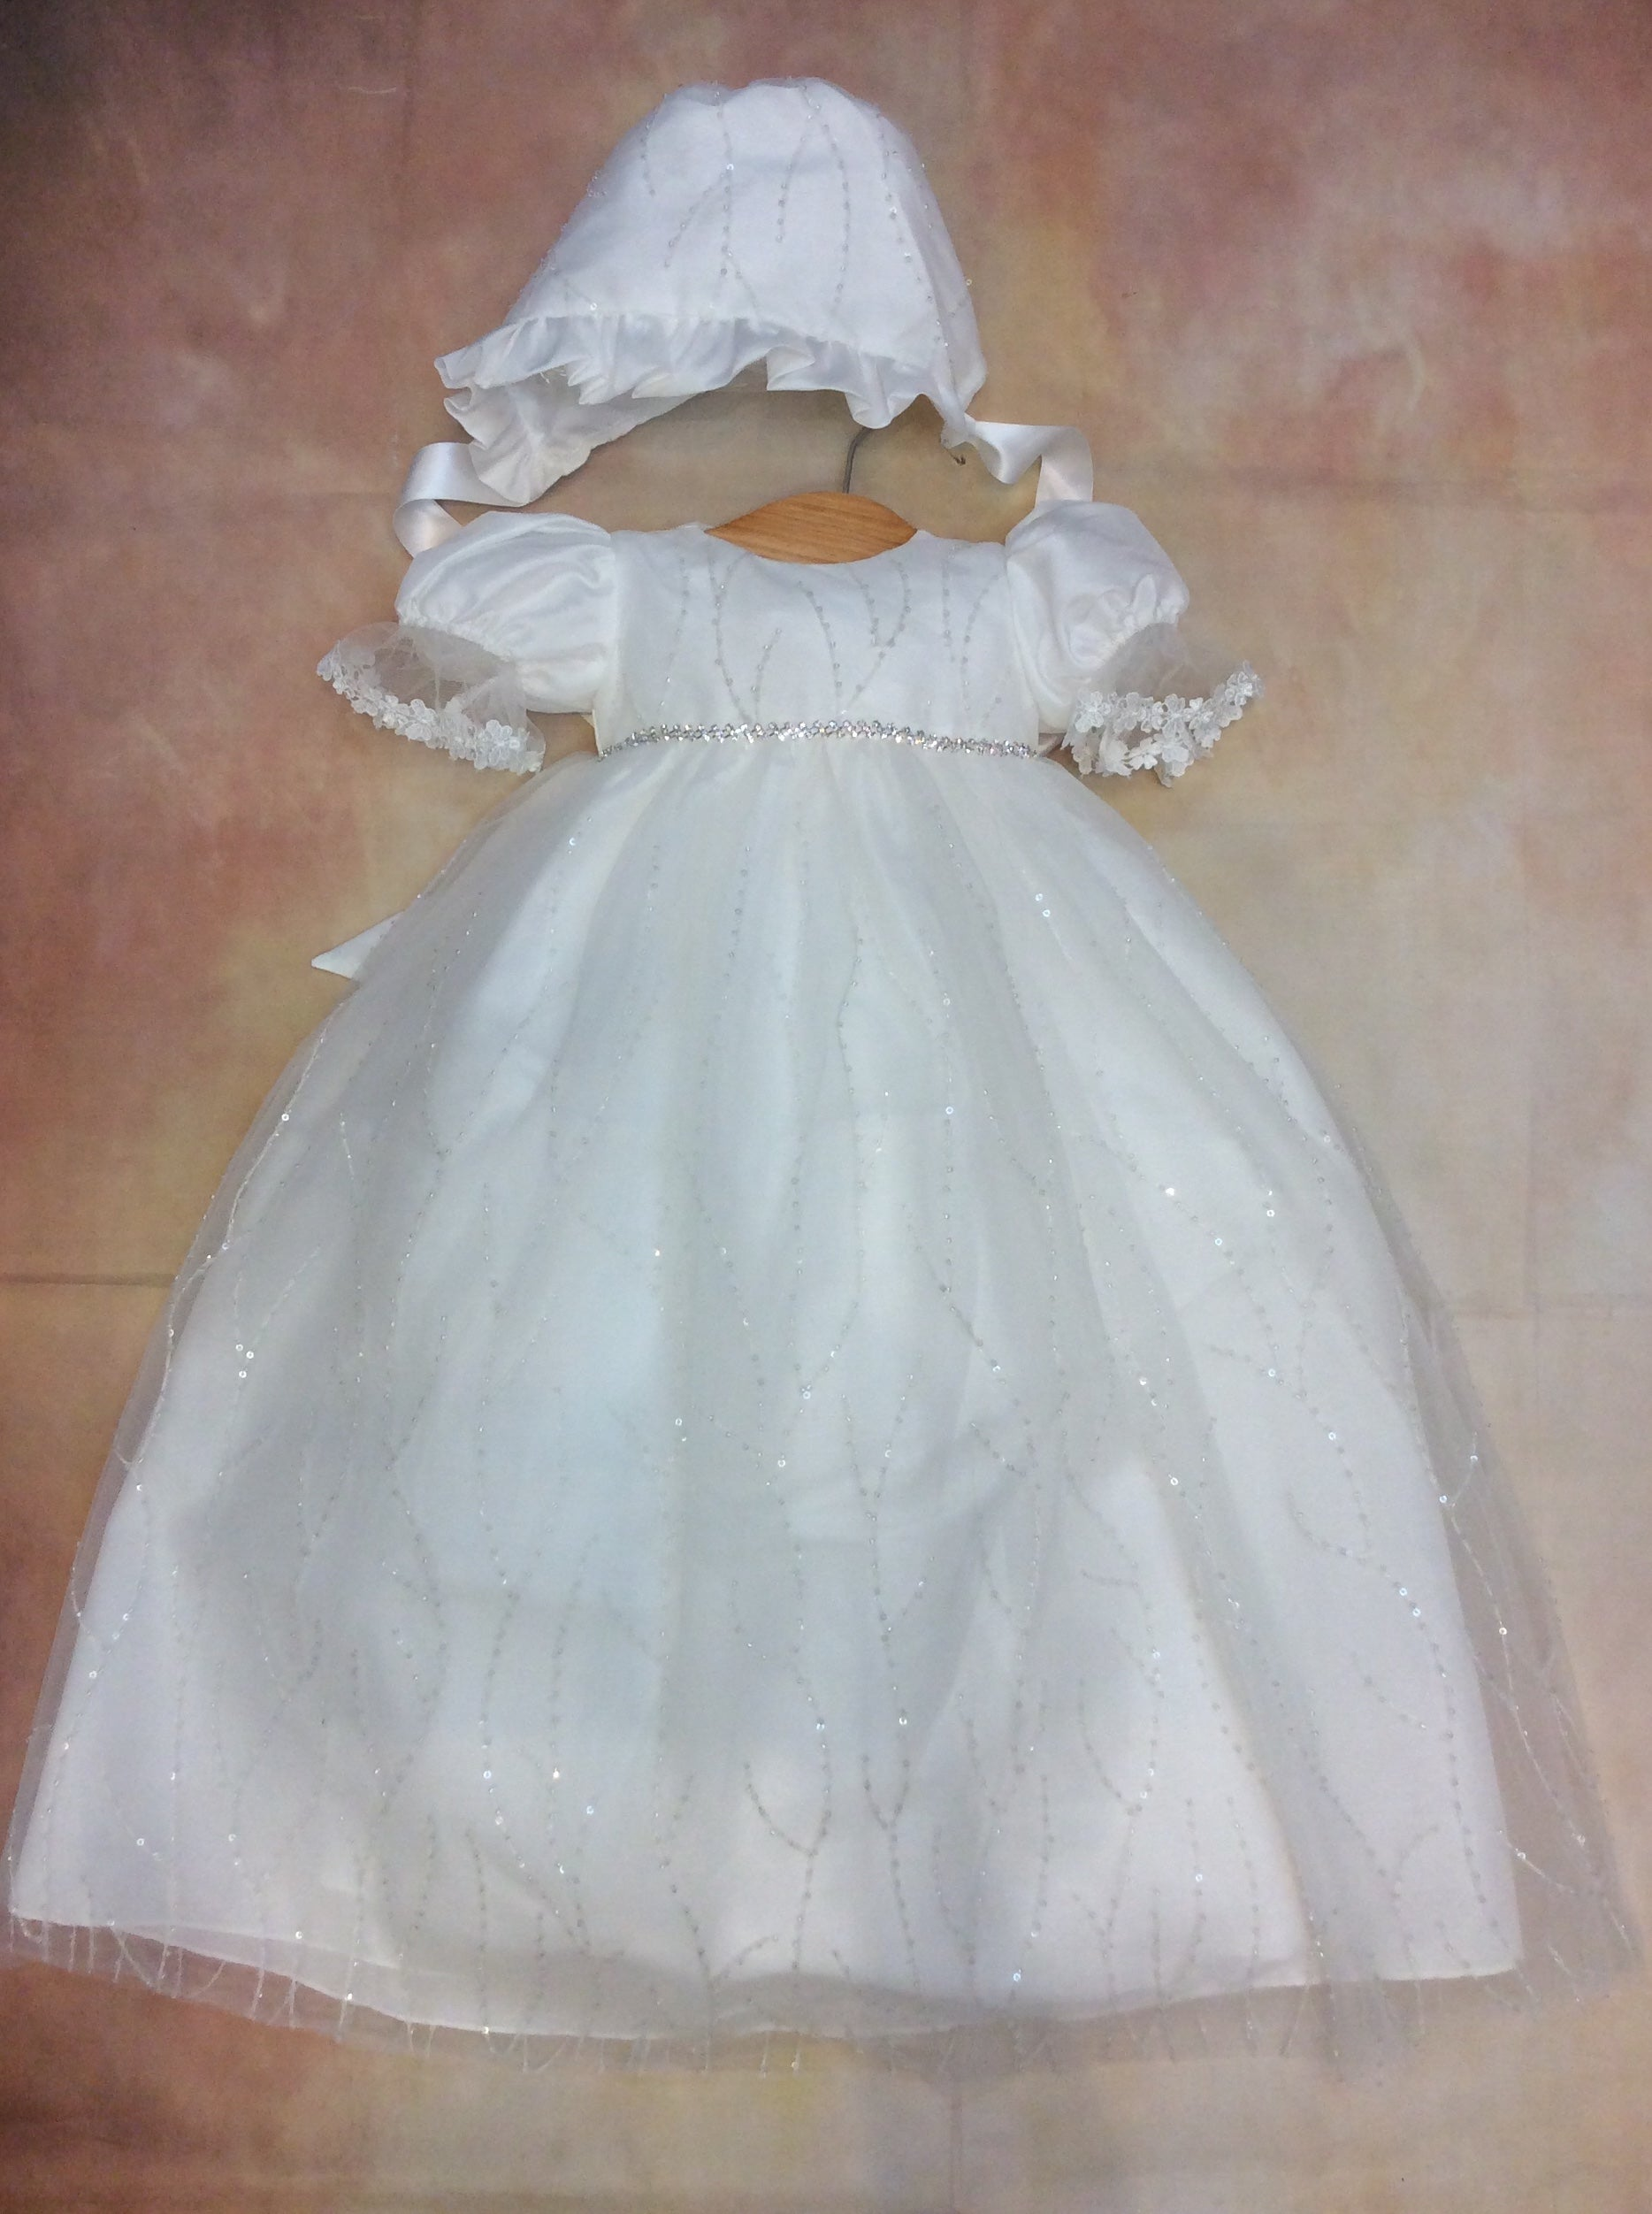 Joie Beautiful re-embroidered sequence Christening Gown With Matching Bonnet - Nenes Lullaby Boutique Inc